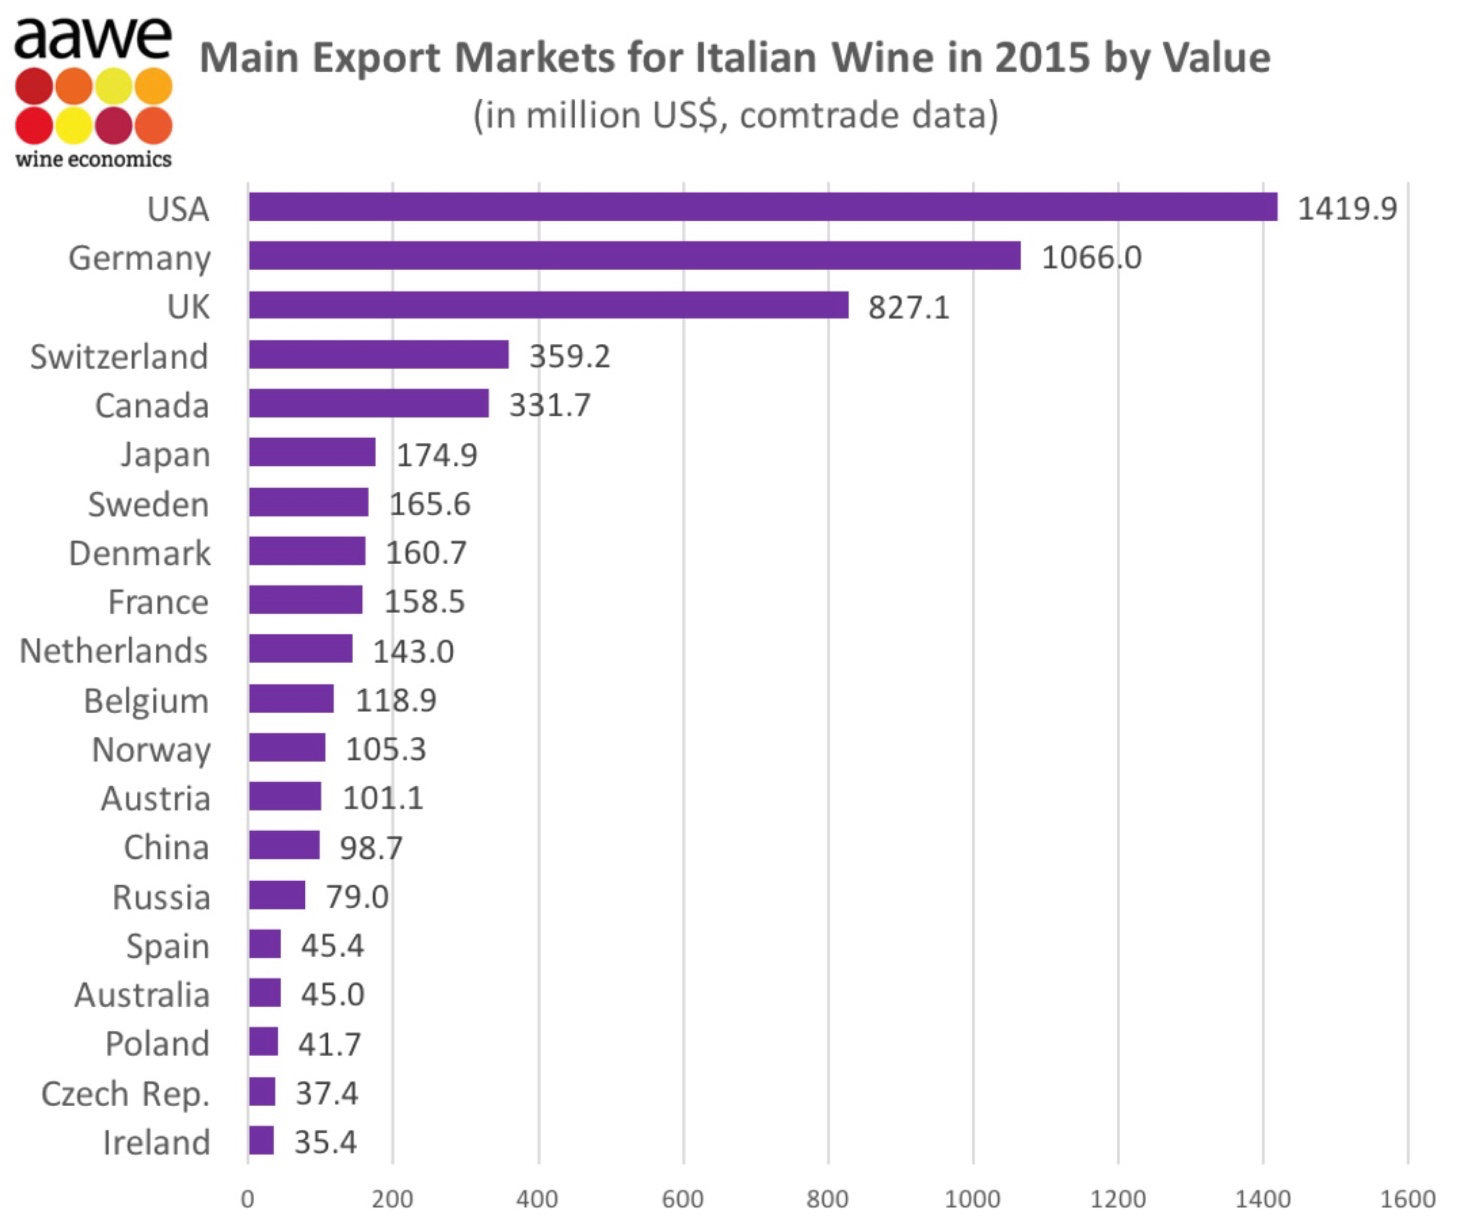 Italy's #1 international wine market? USA! USA!